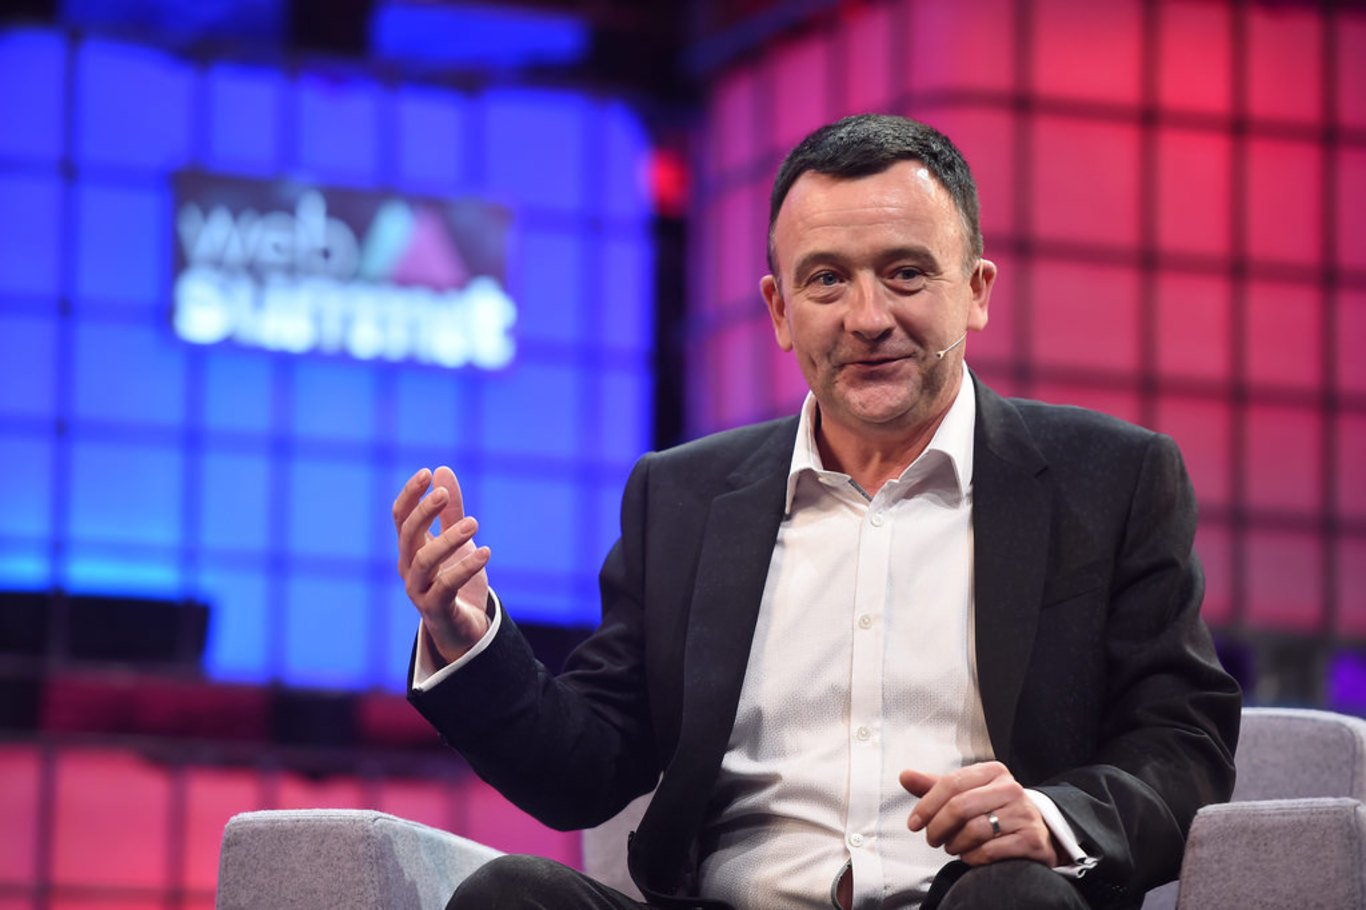 A founder's life after selling for €115m: 'I could never see